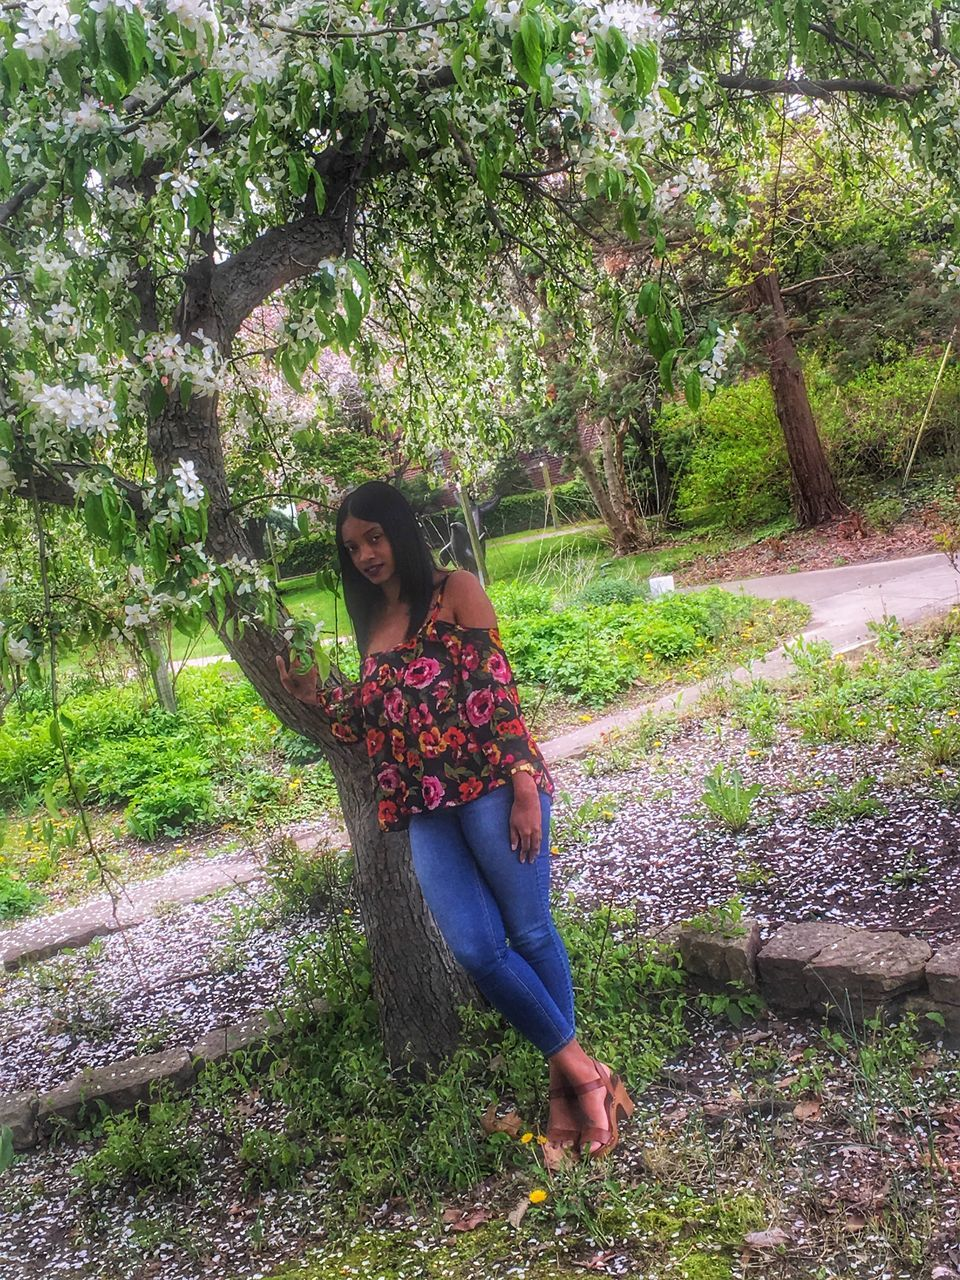 real people, full length, tree, two people, young women, leisure activity, lifestyles, young adult, nature, growth, casual clothing, day, front view, standing, togetherness, outdoors, plant, beauty in nature, grass, flower